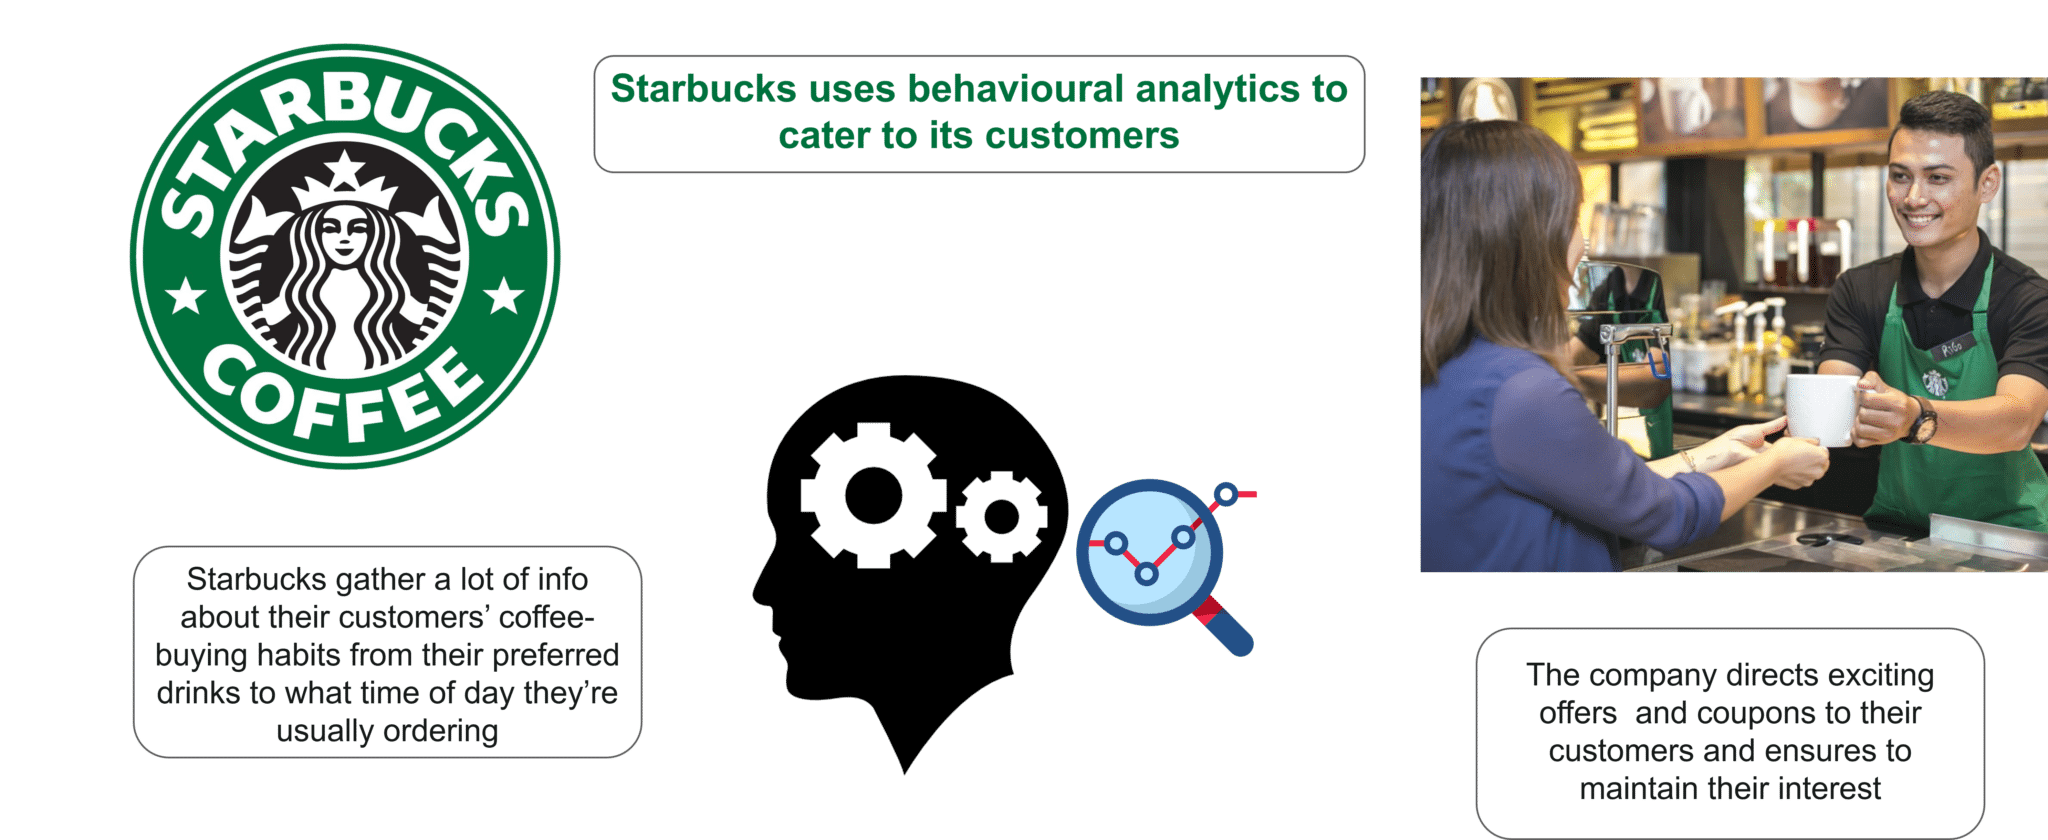 Starbucks Use Case - Big Data Analytics - Edureka